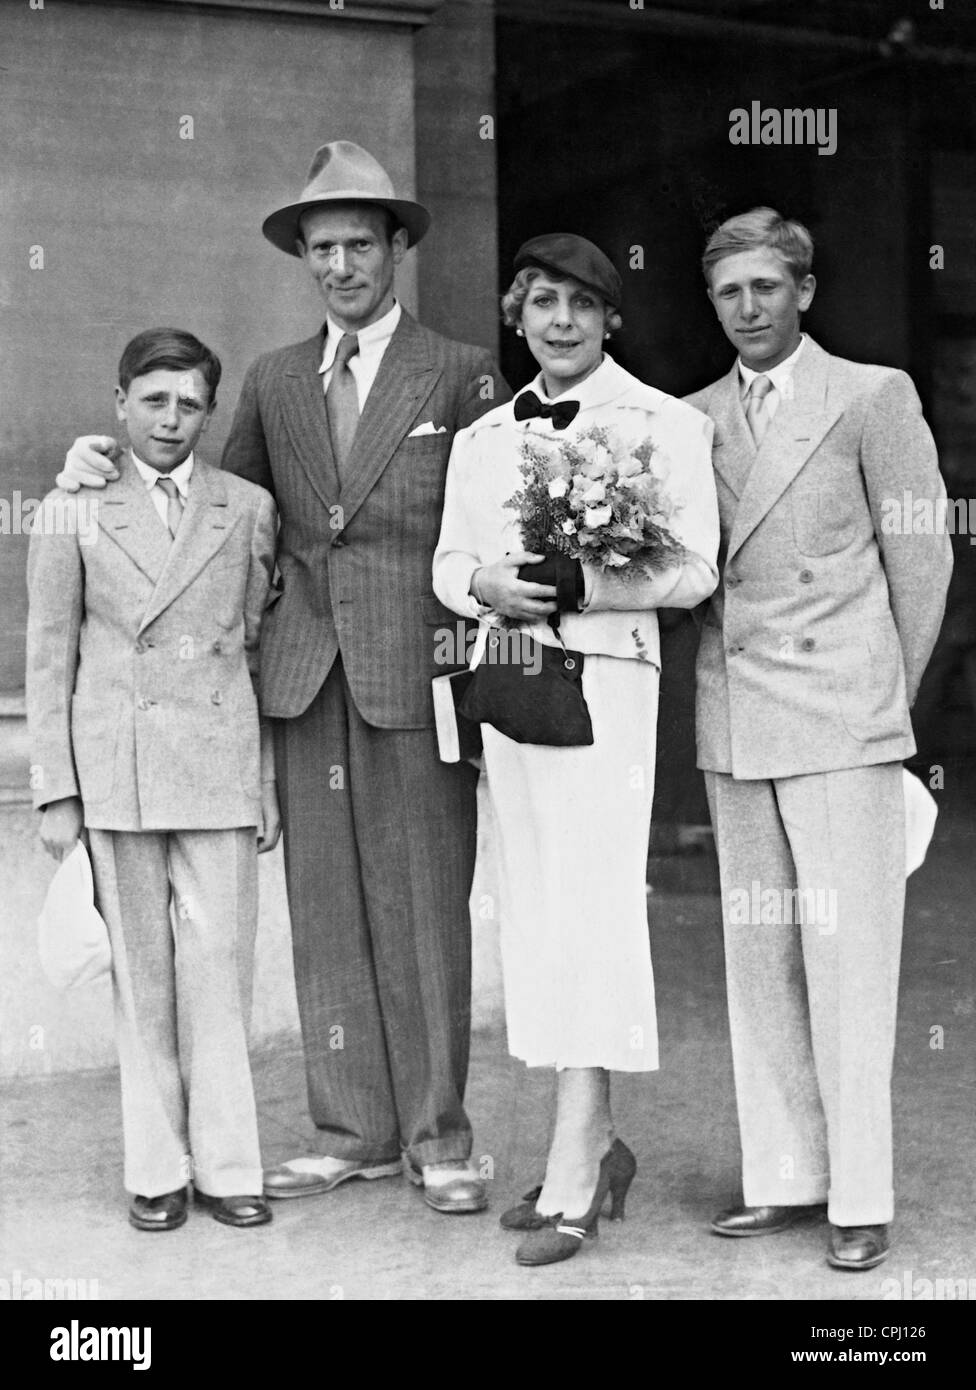 Vicki Baum with her family, 1933 - Stock Image